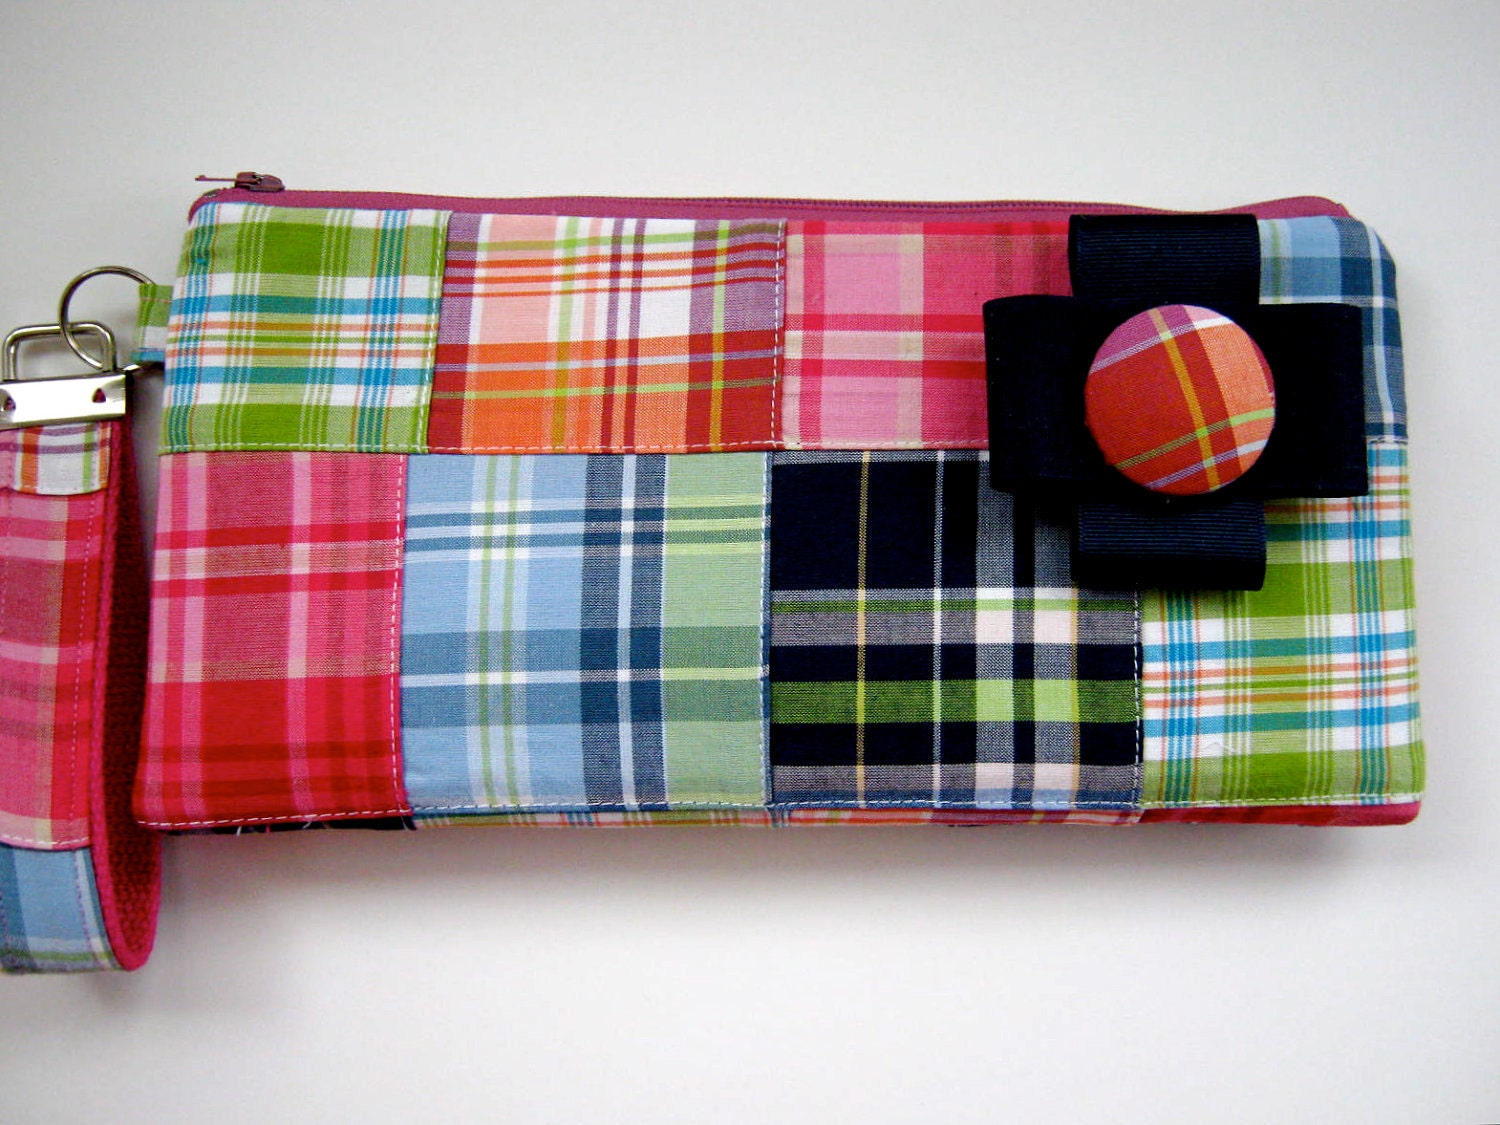 Preppy Wristlet Wallet Clutch - Pink Plaid Summer Fashion